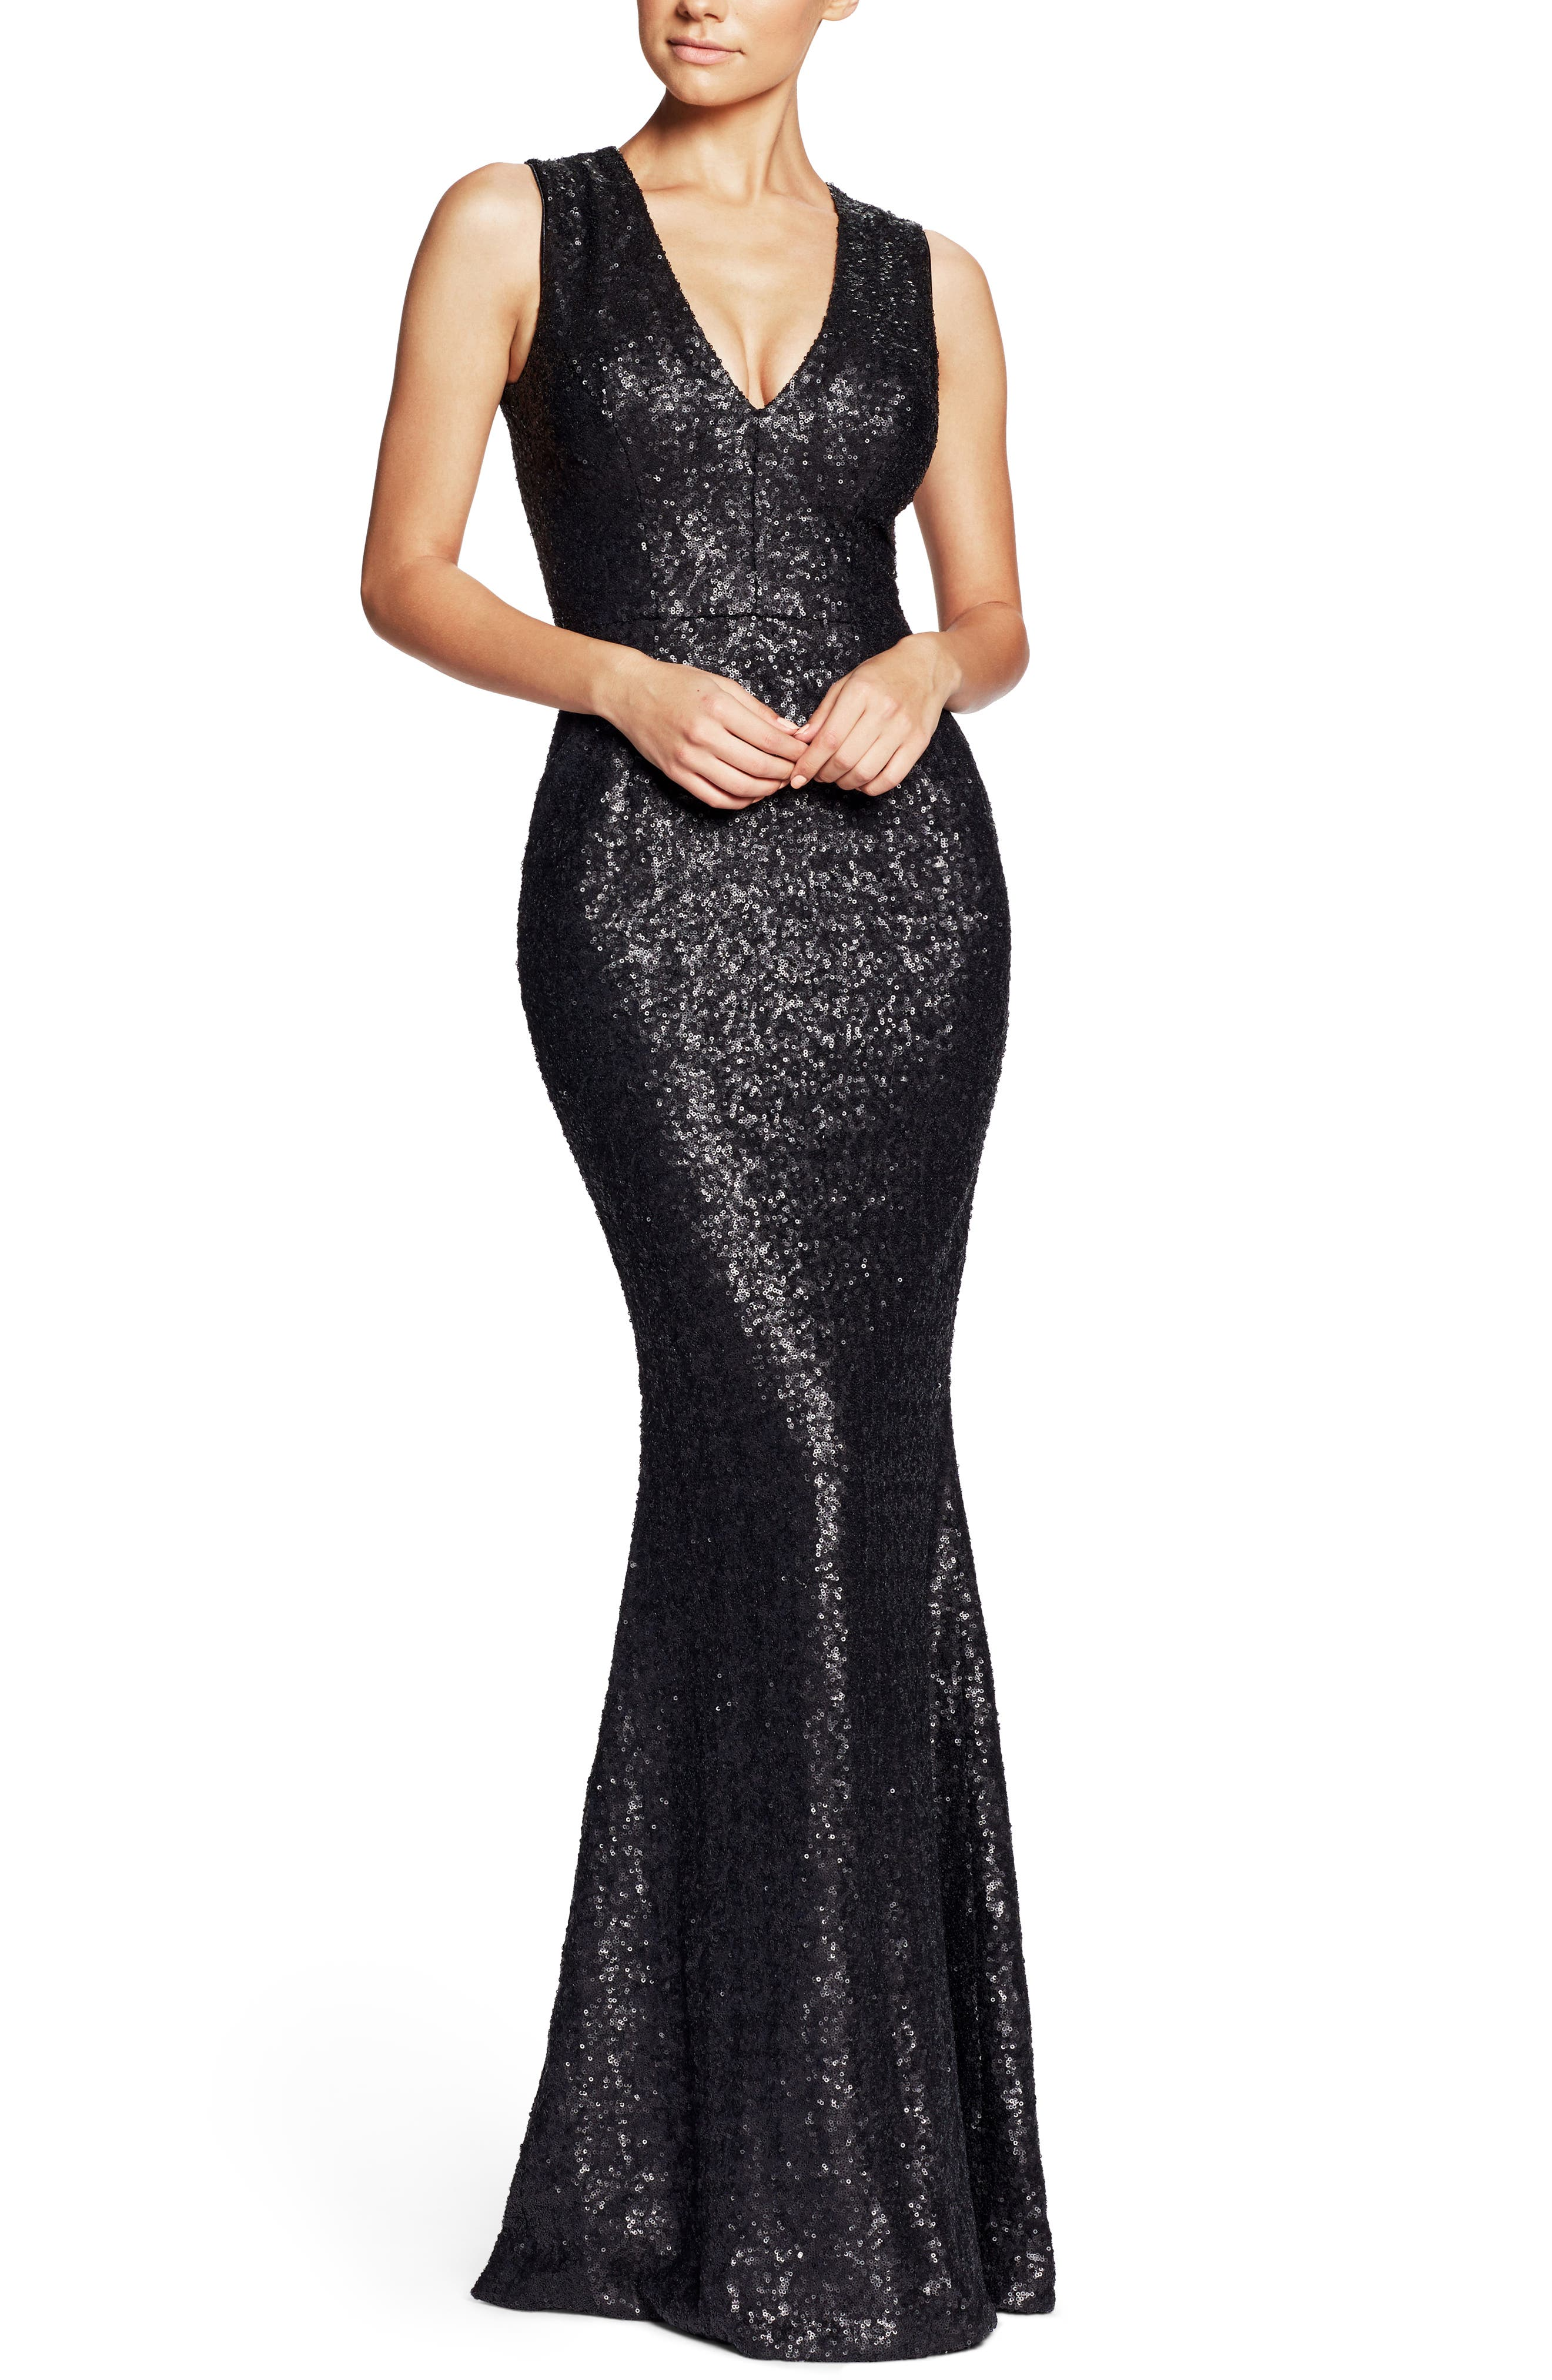 DRESS THE POPULATION, Karina Plunge Mermaid Gown, Main thumbnail 1, color, 018